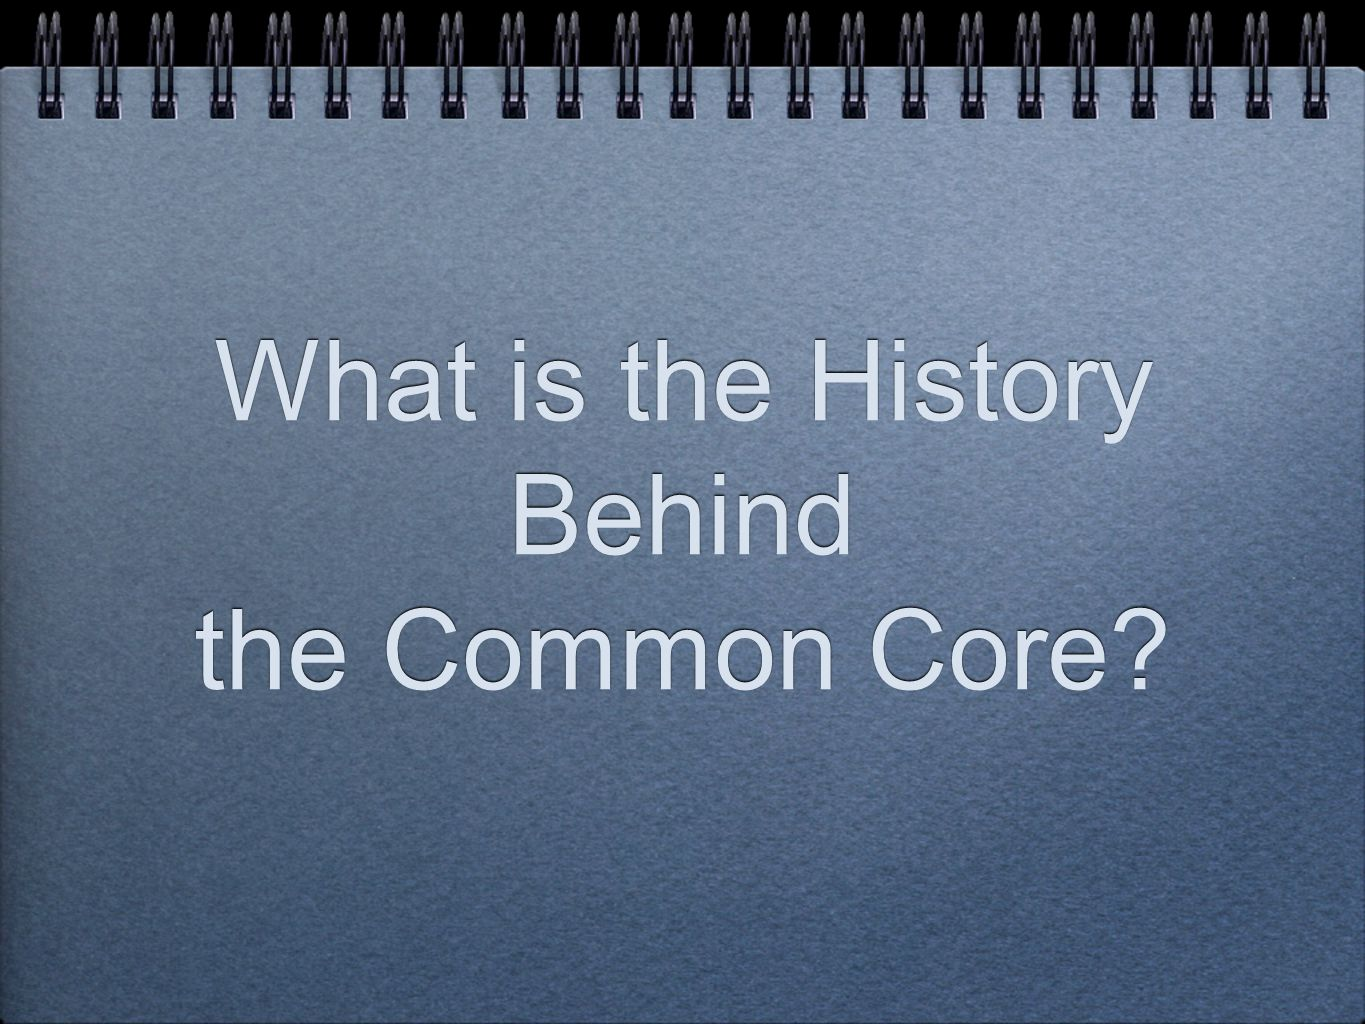 What is the History Behind the Common Core?